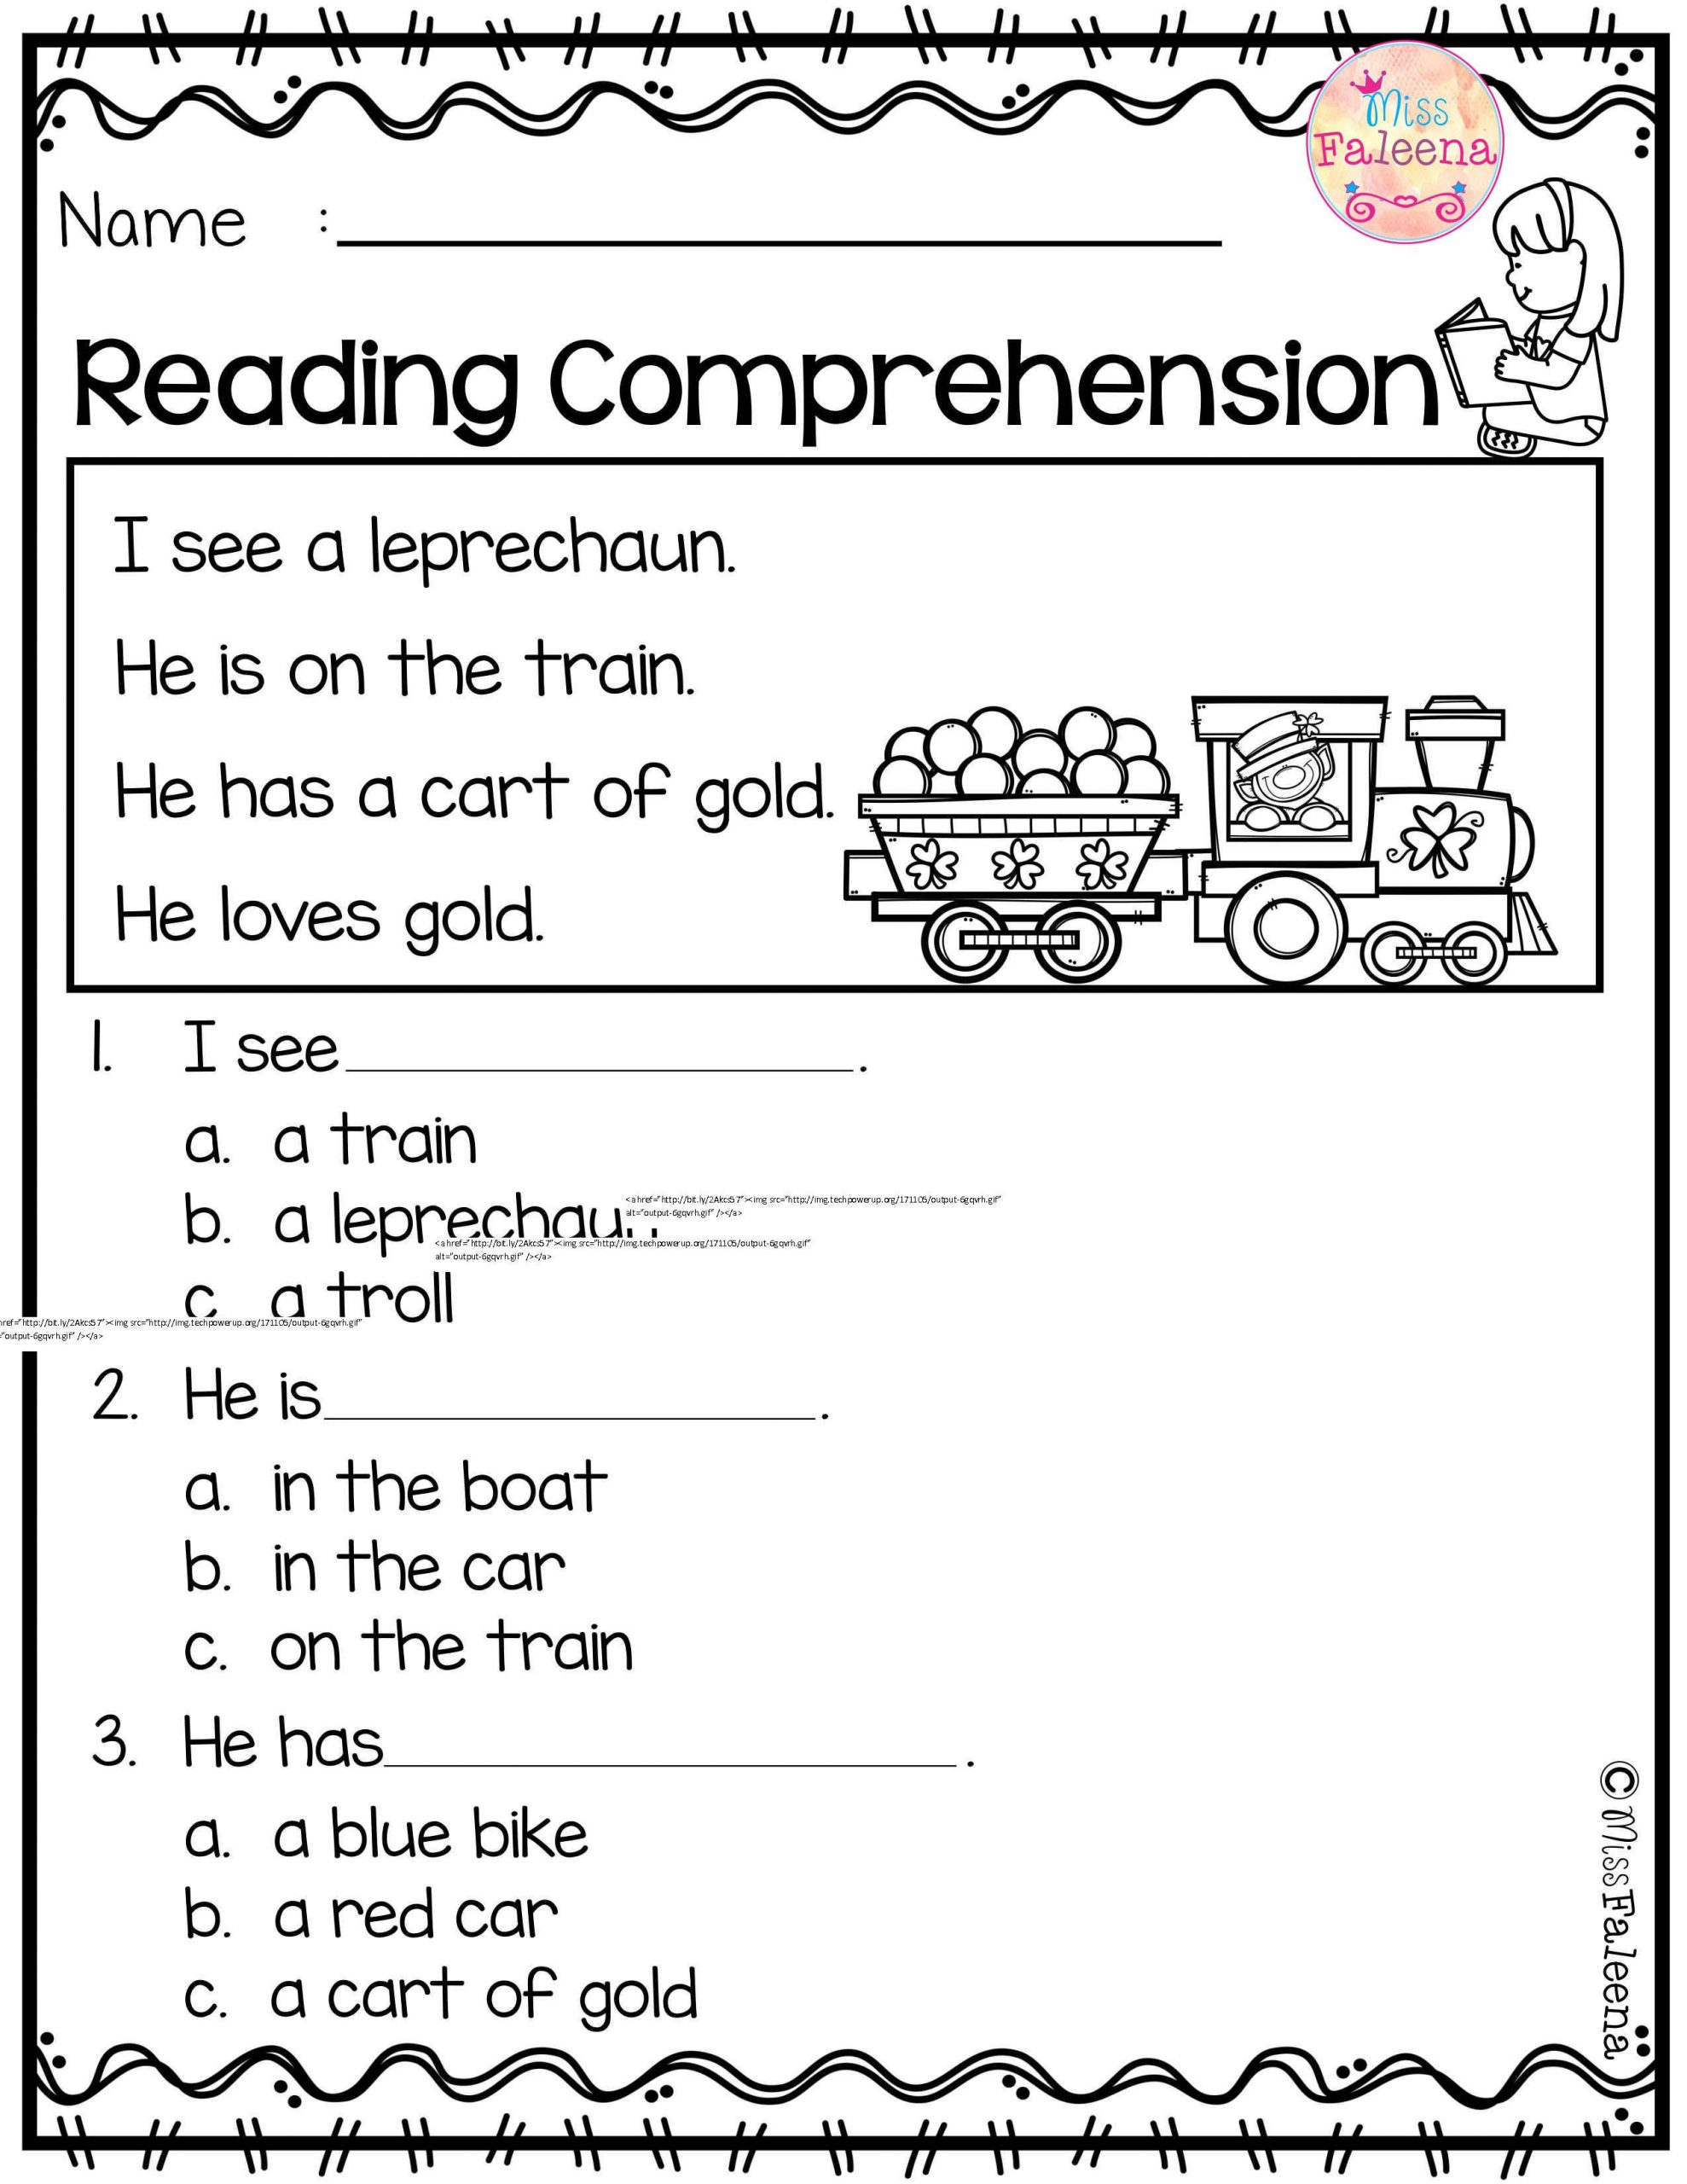 Reading Comprehension Kindergarten Worksheets Free March Reading Prehension